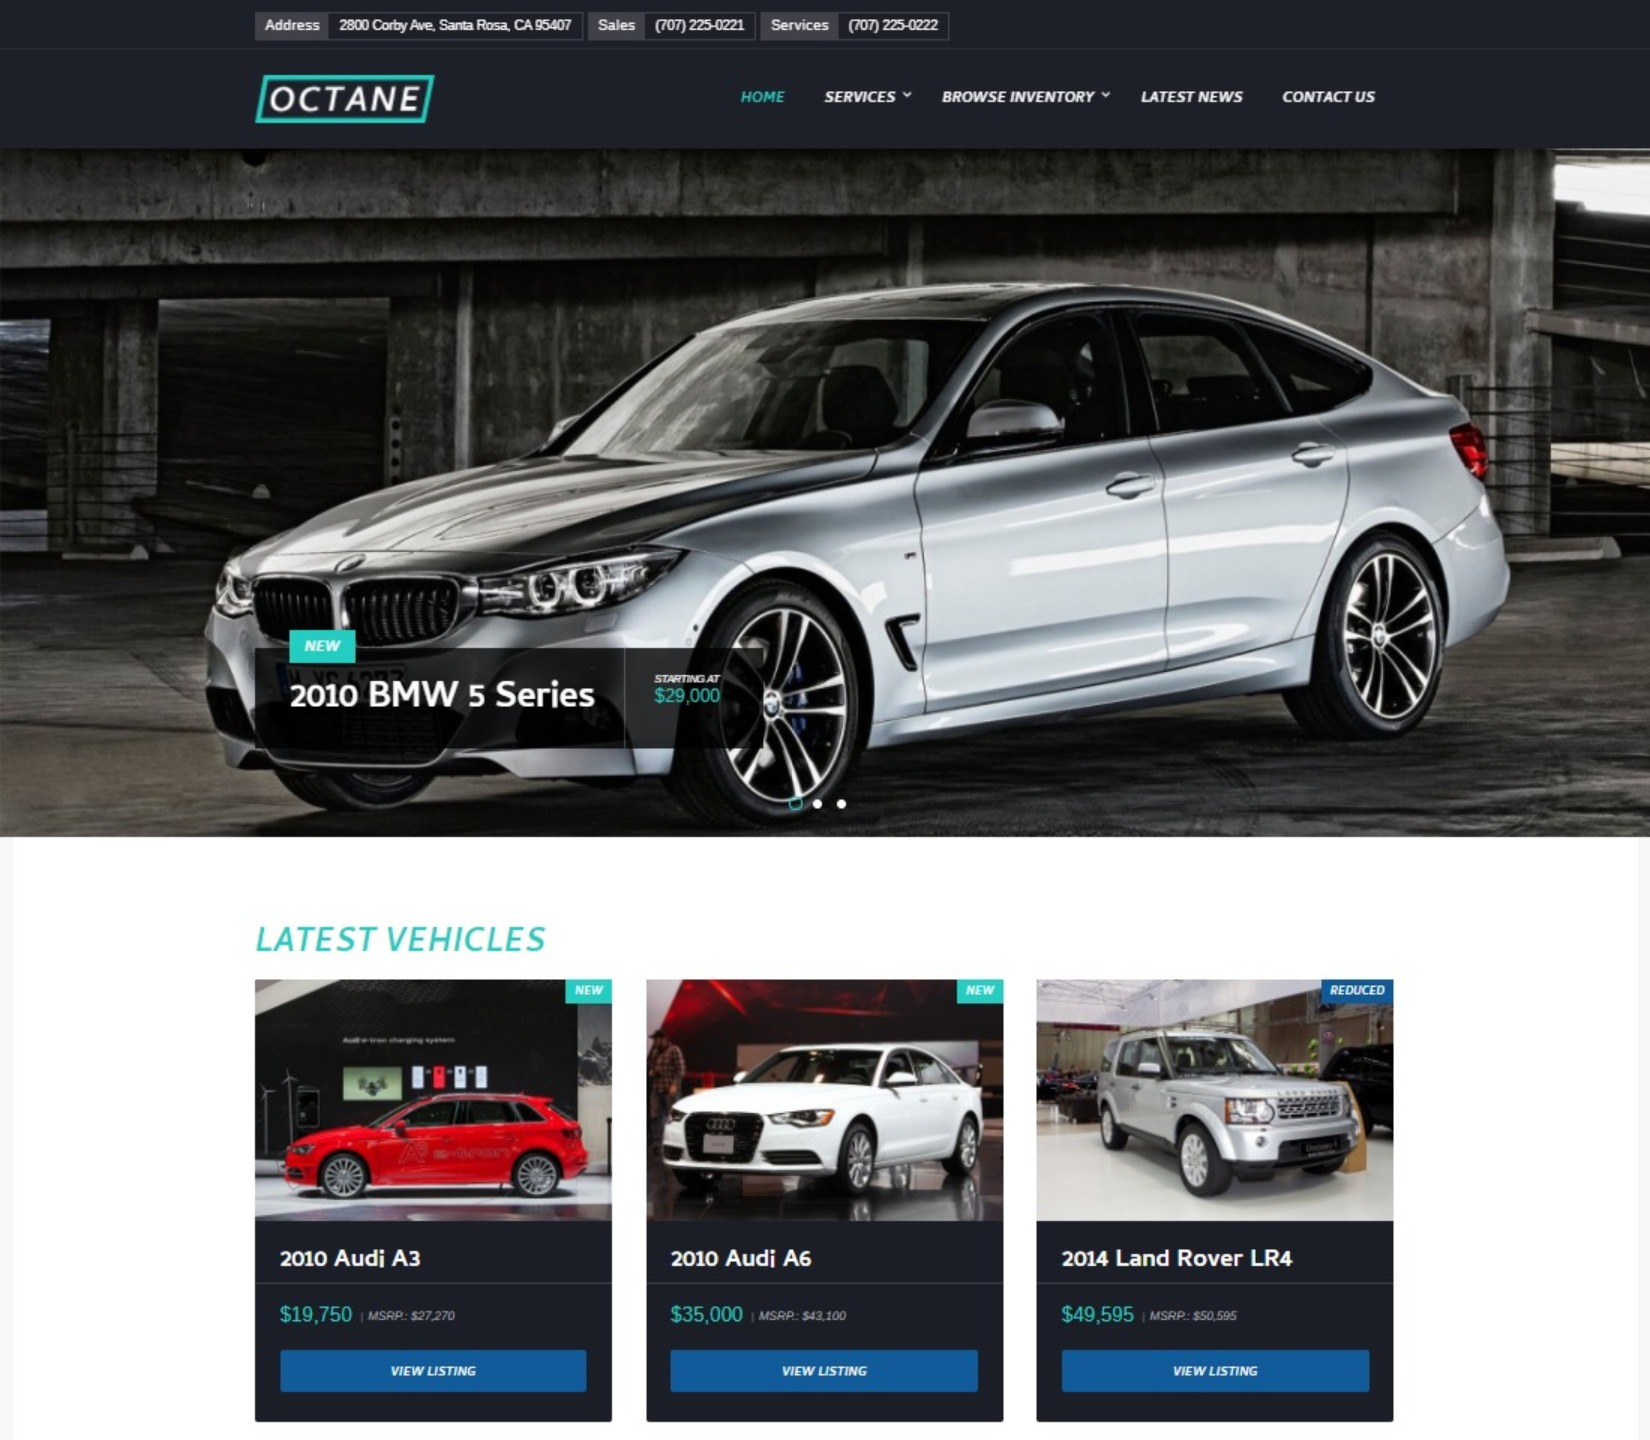 Octane Car Dealership Beautifully Designed Auto Dealer Theme